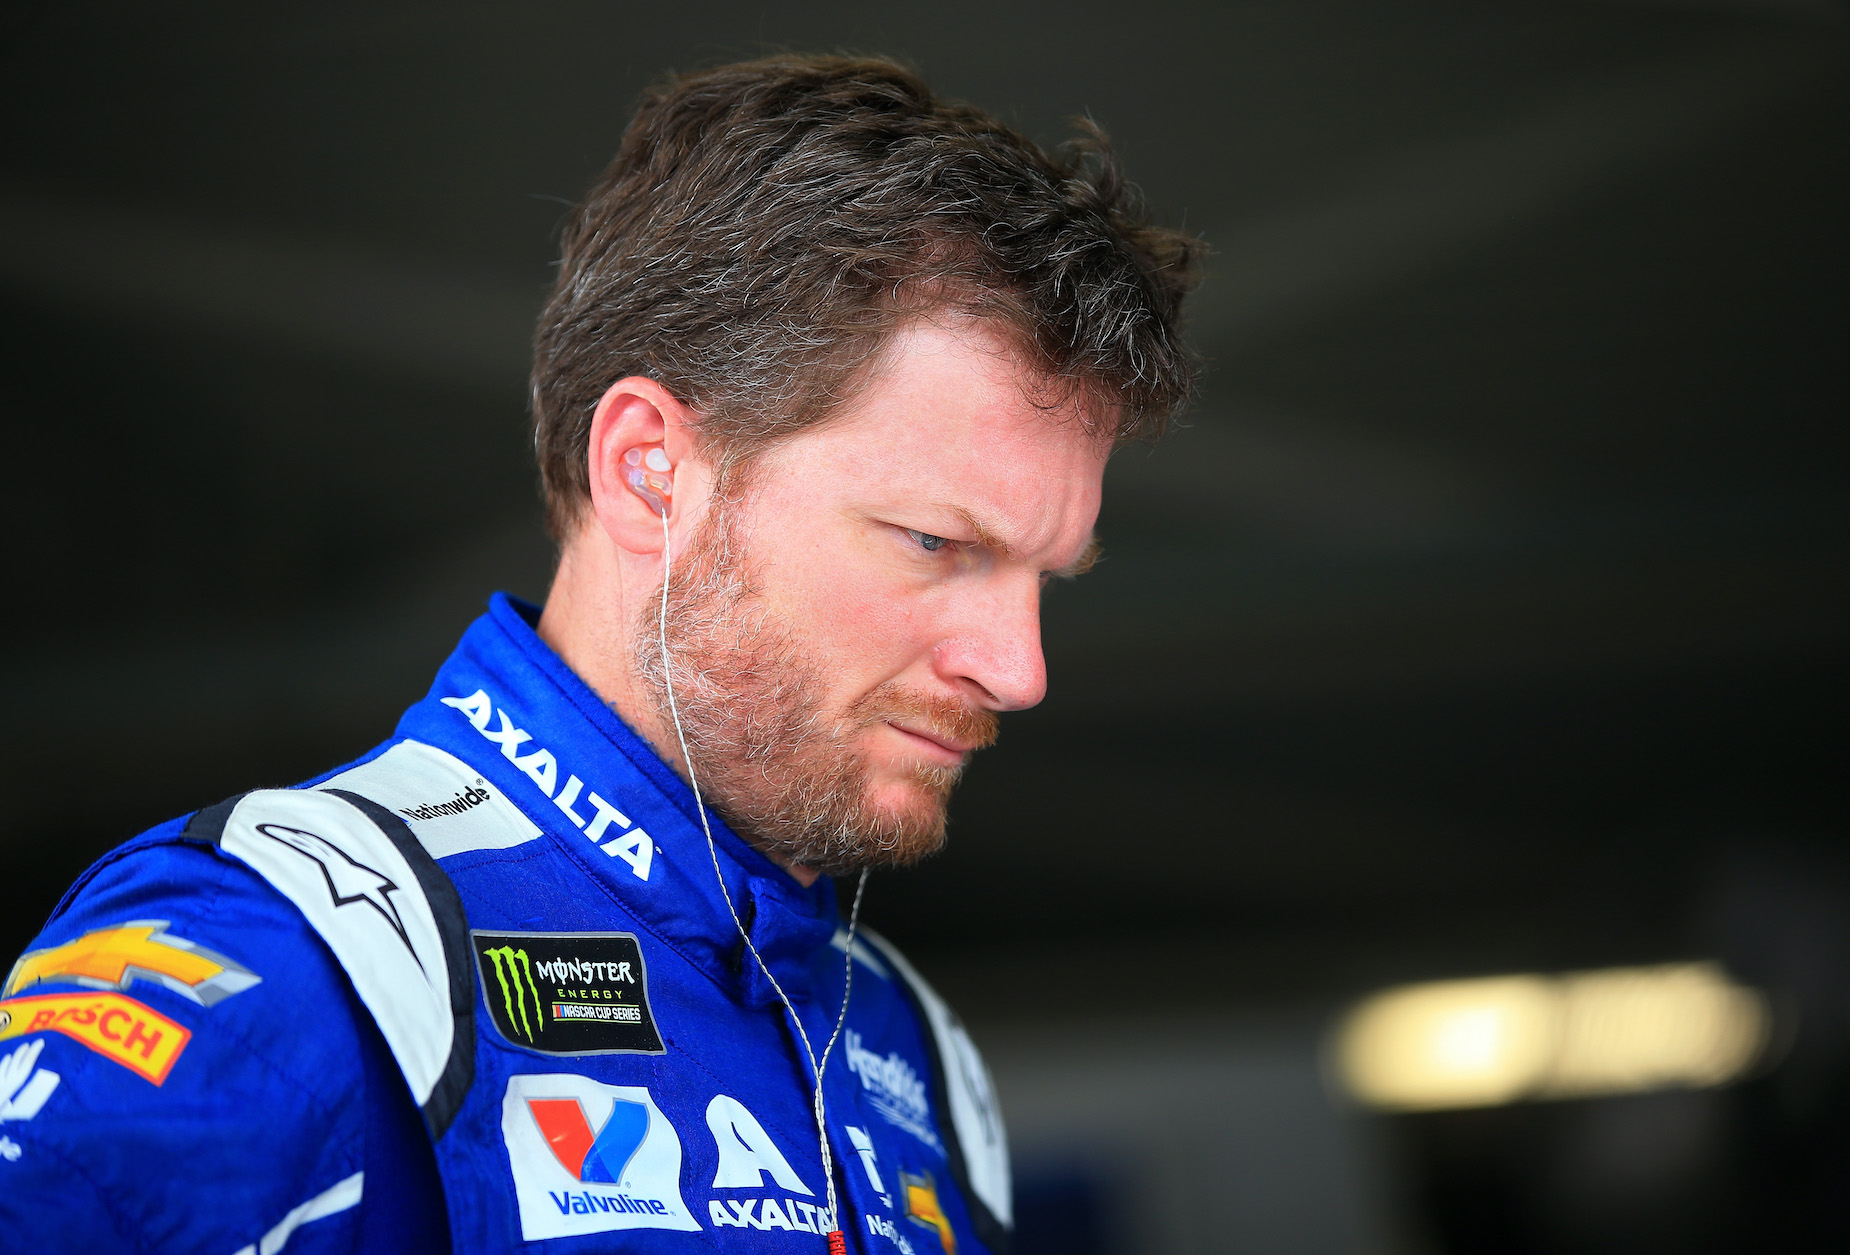 NASCAR star Dale Earnhardt Jr. during the 2017 Cup Series campaign.